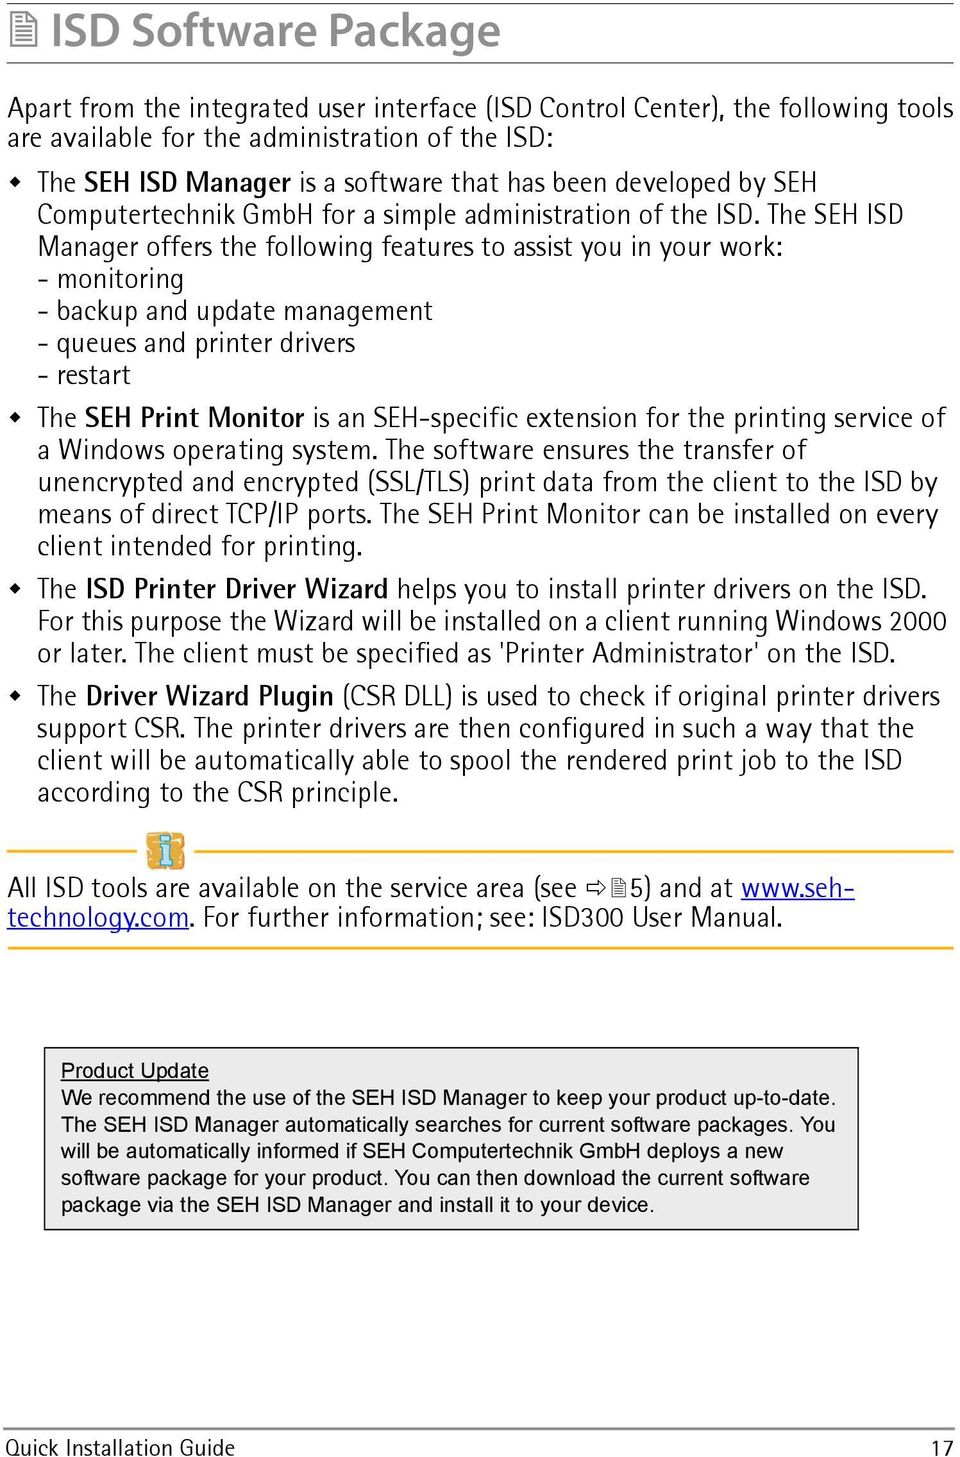 The SEH ISD Manager offers the following features to assist you in your work: - monitoring - backup and update management - queues and printer drivers - restart The SEH Print Monitor is an